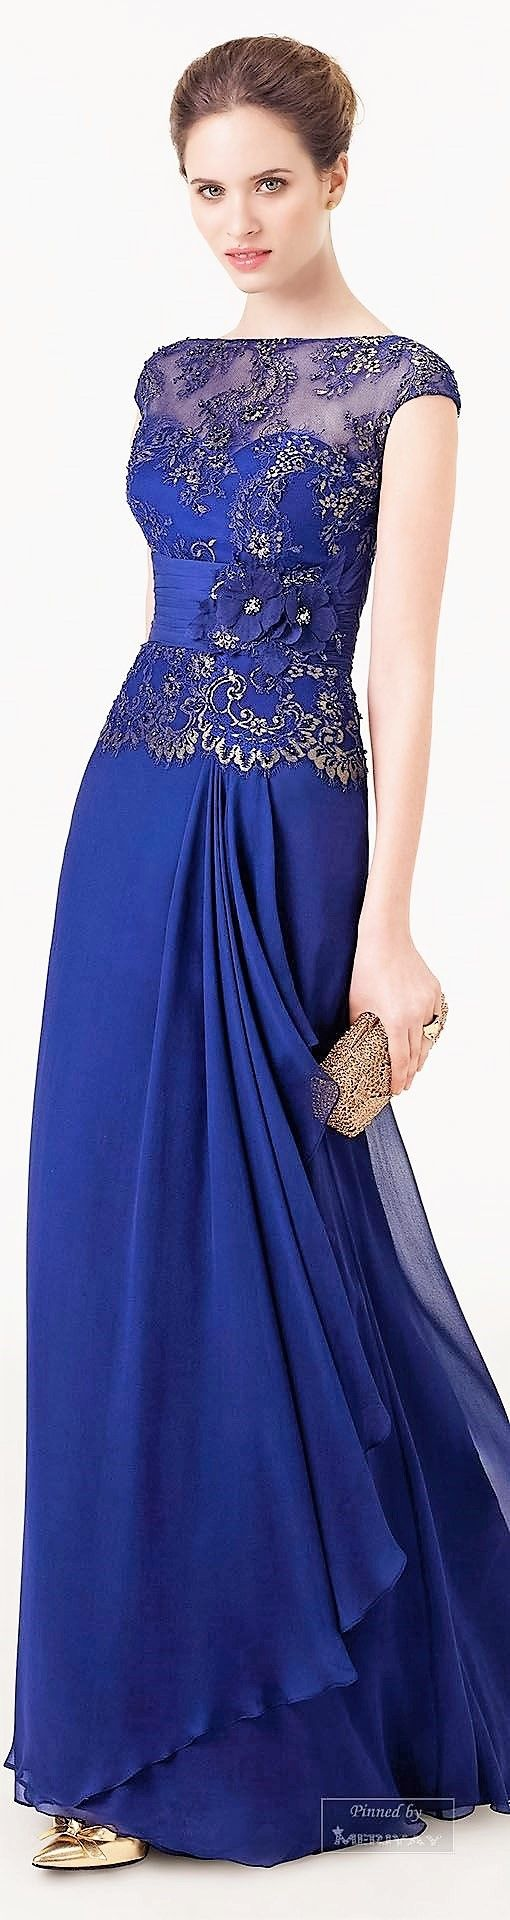 81 best My Style images on Pinterest | Night out dresses, Party ...